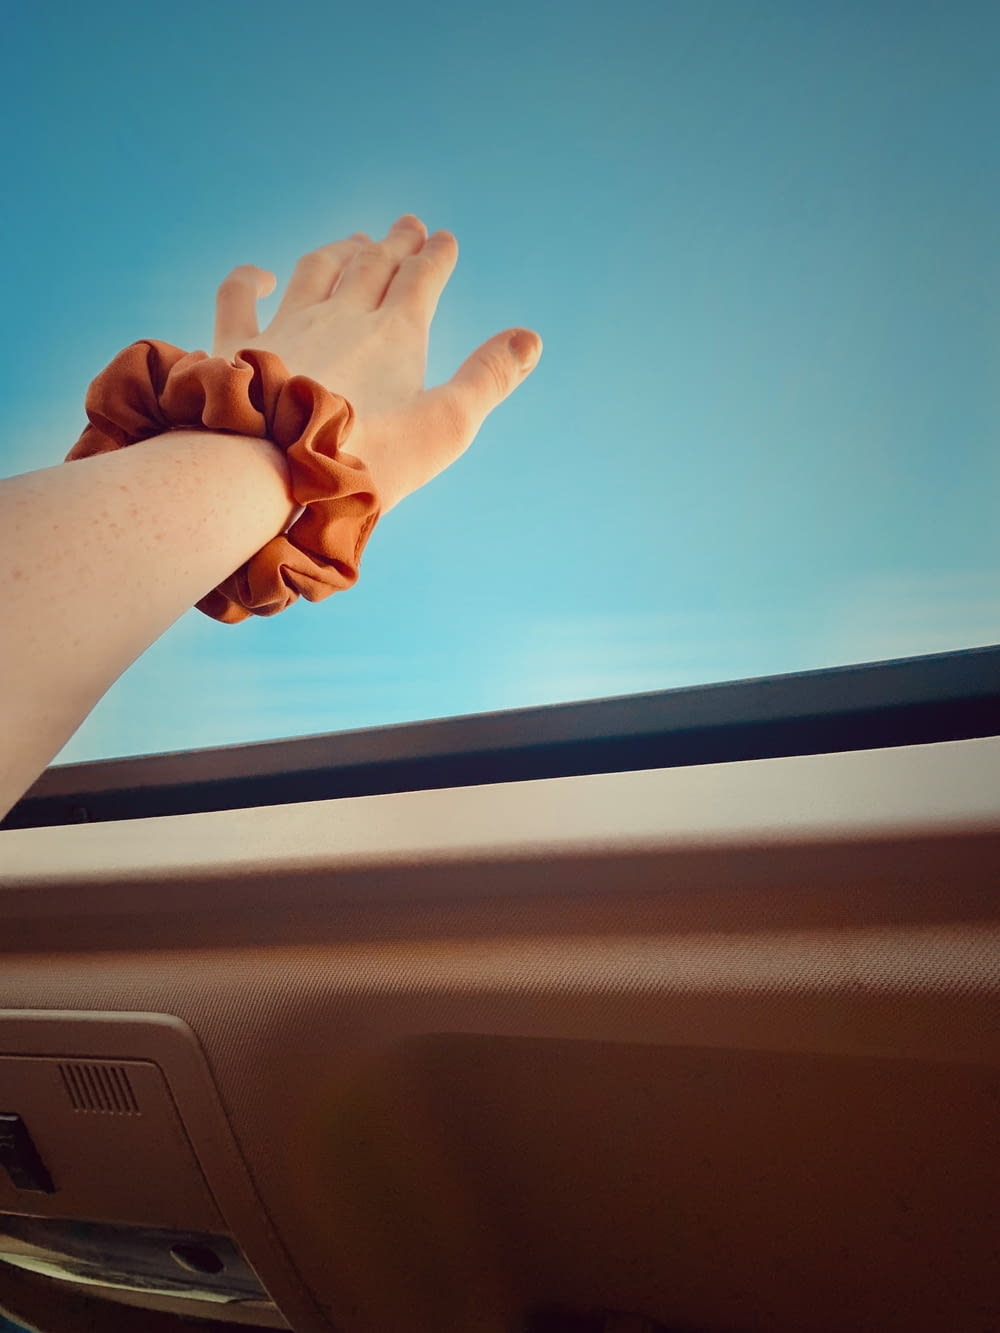 persons left hand on car dashboard